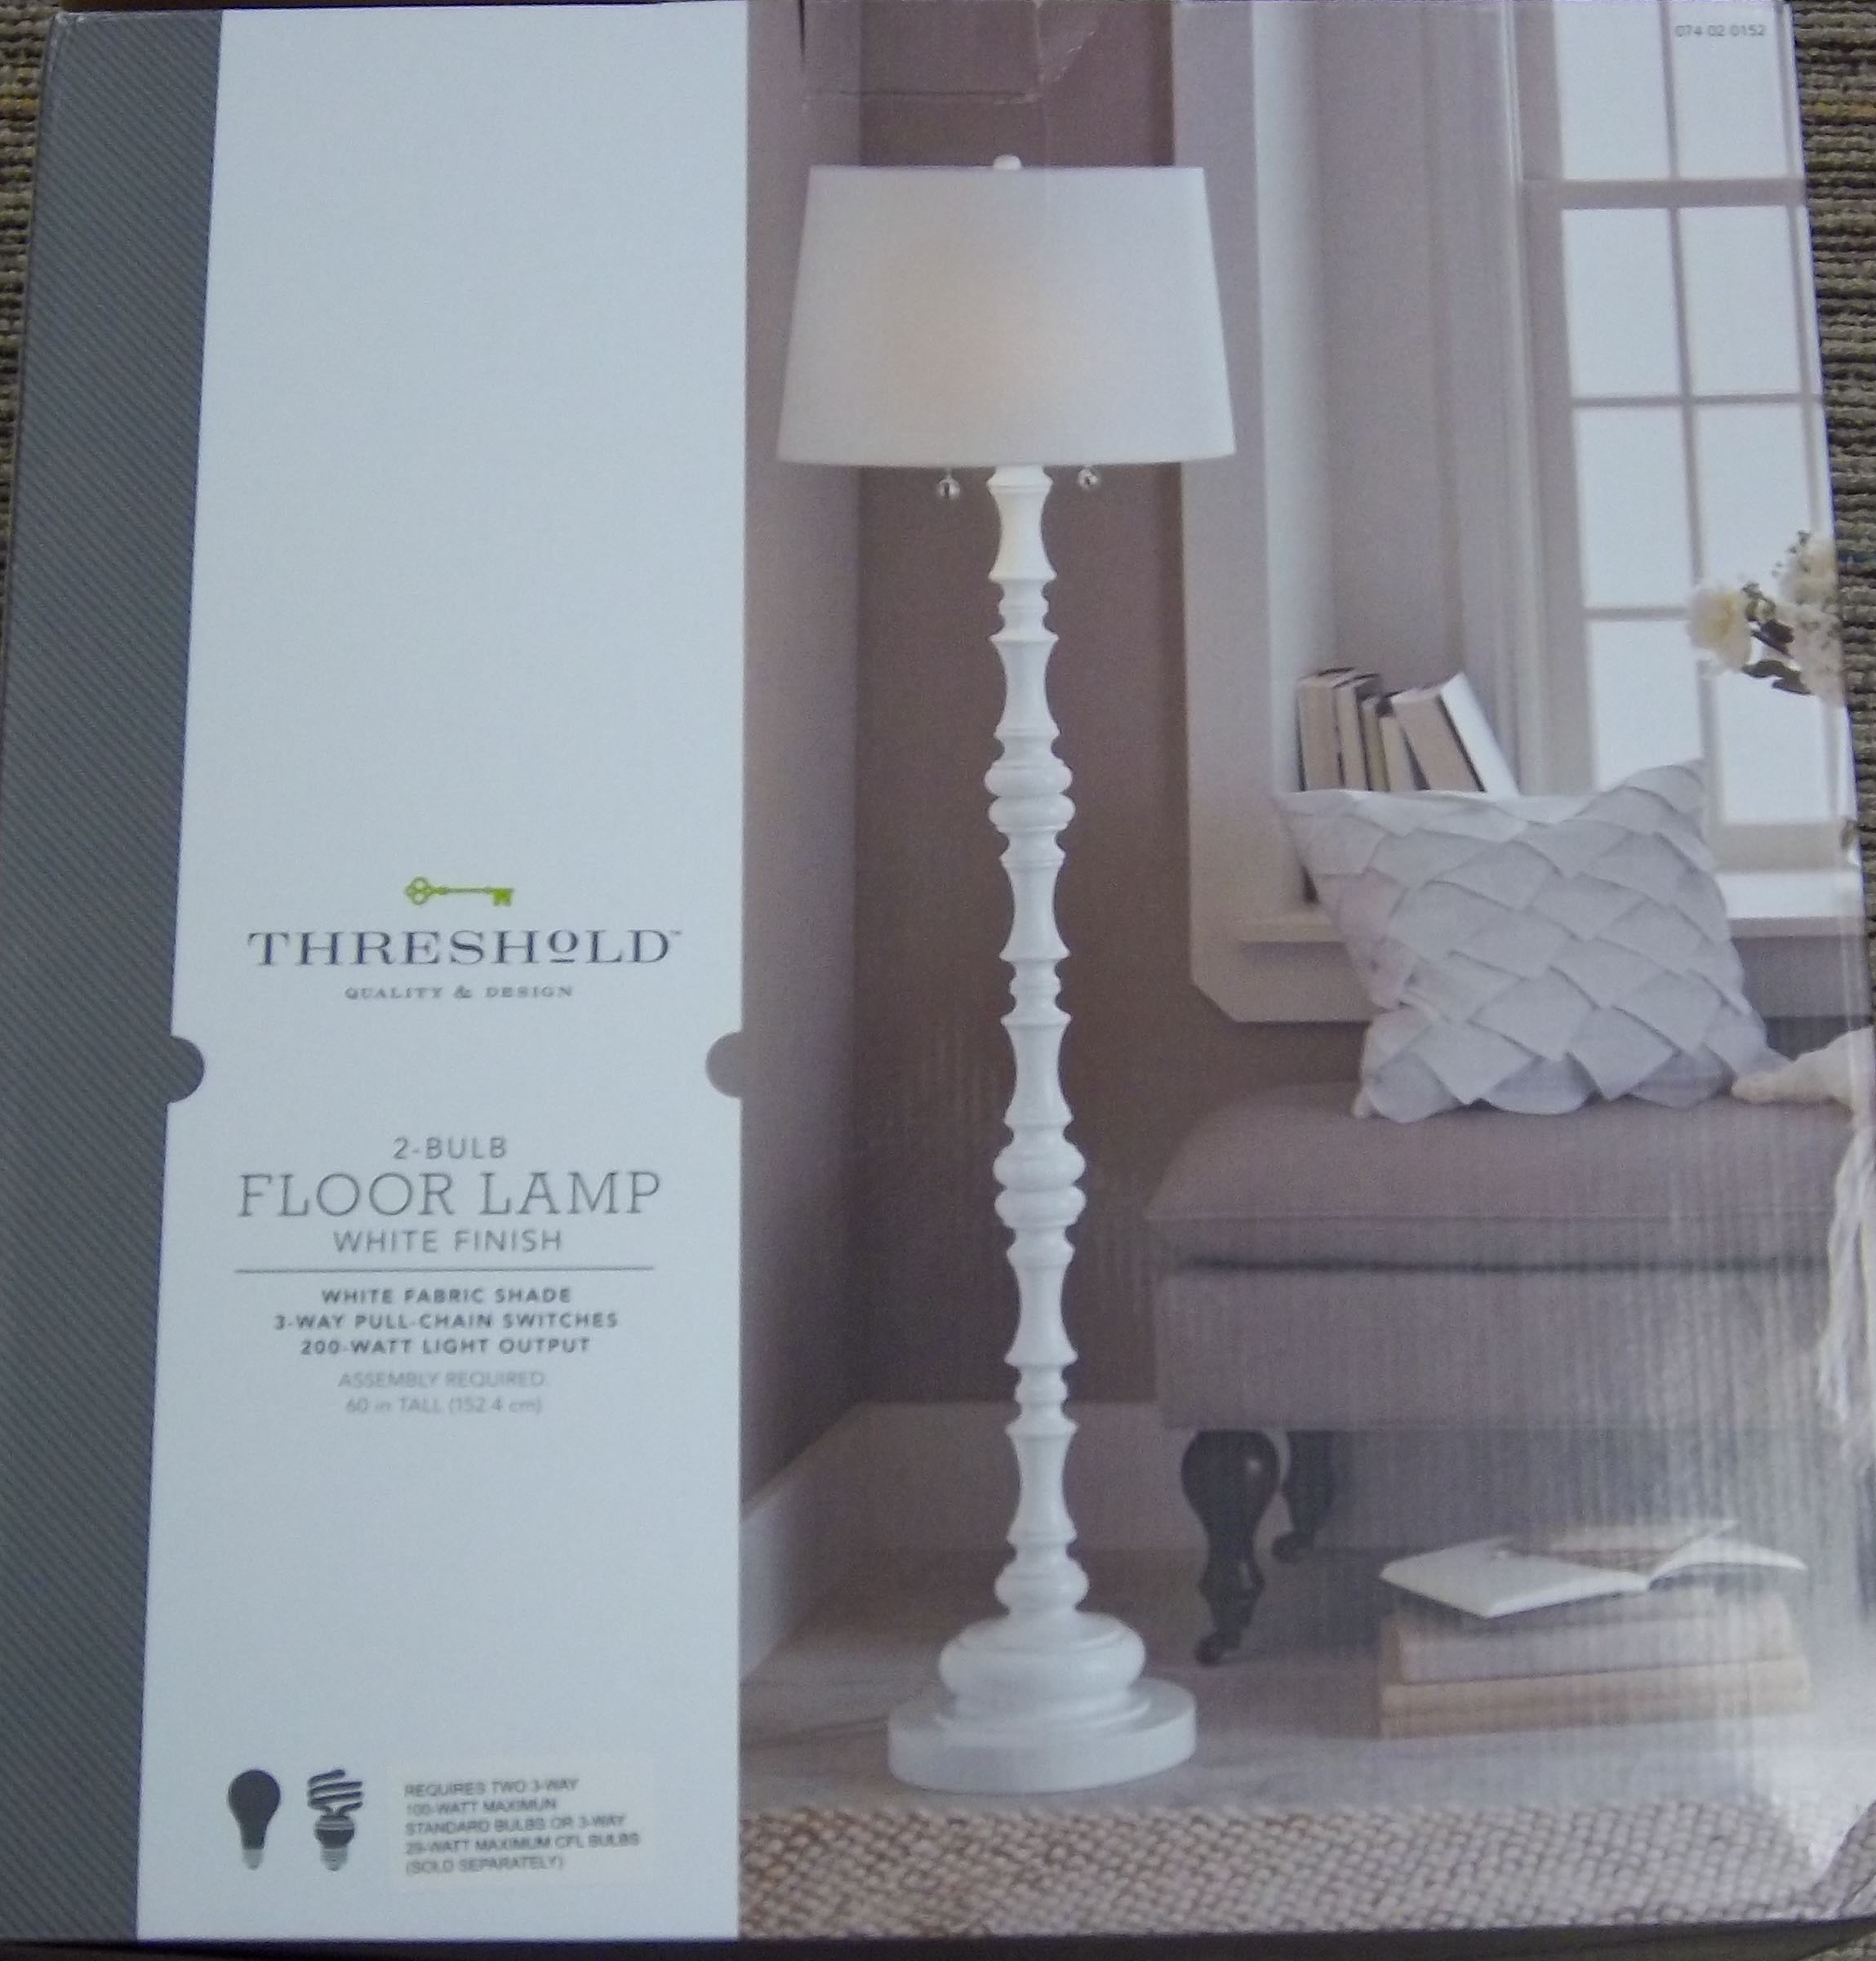 Target Recalls Threshold Floor Lamps Due to Fire and Shock Hazard ...